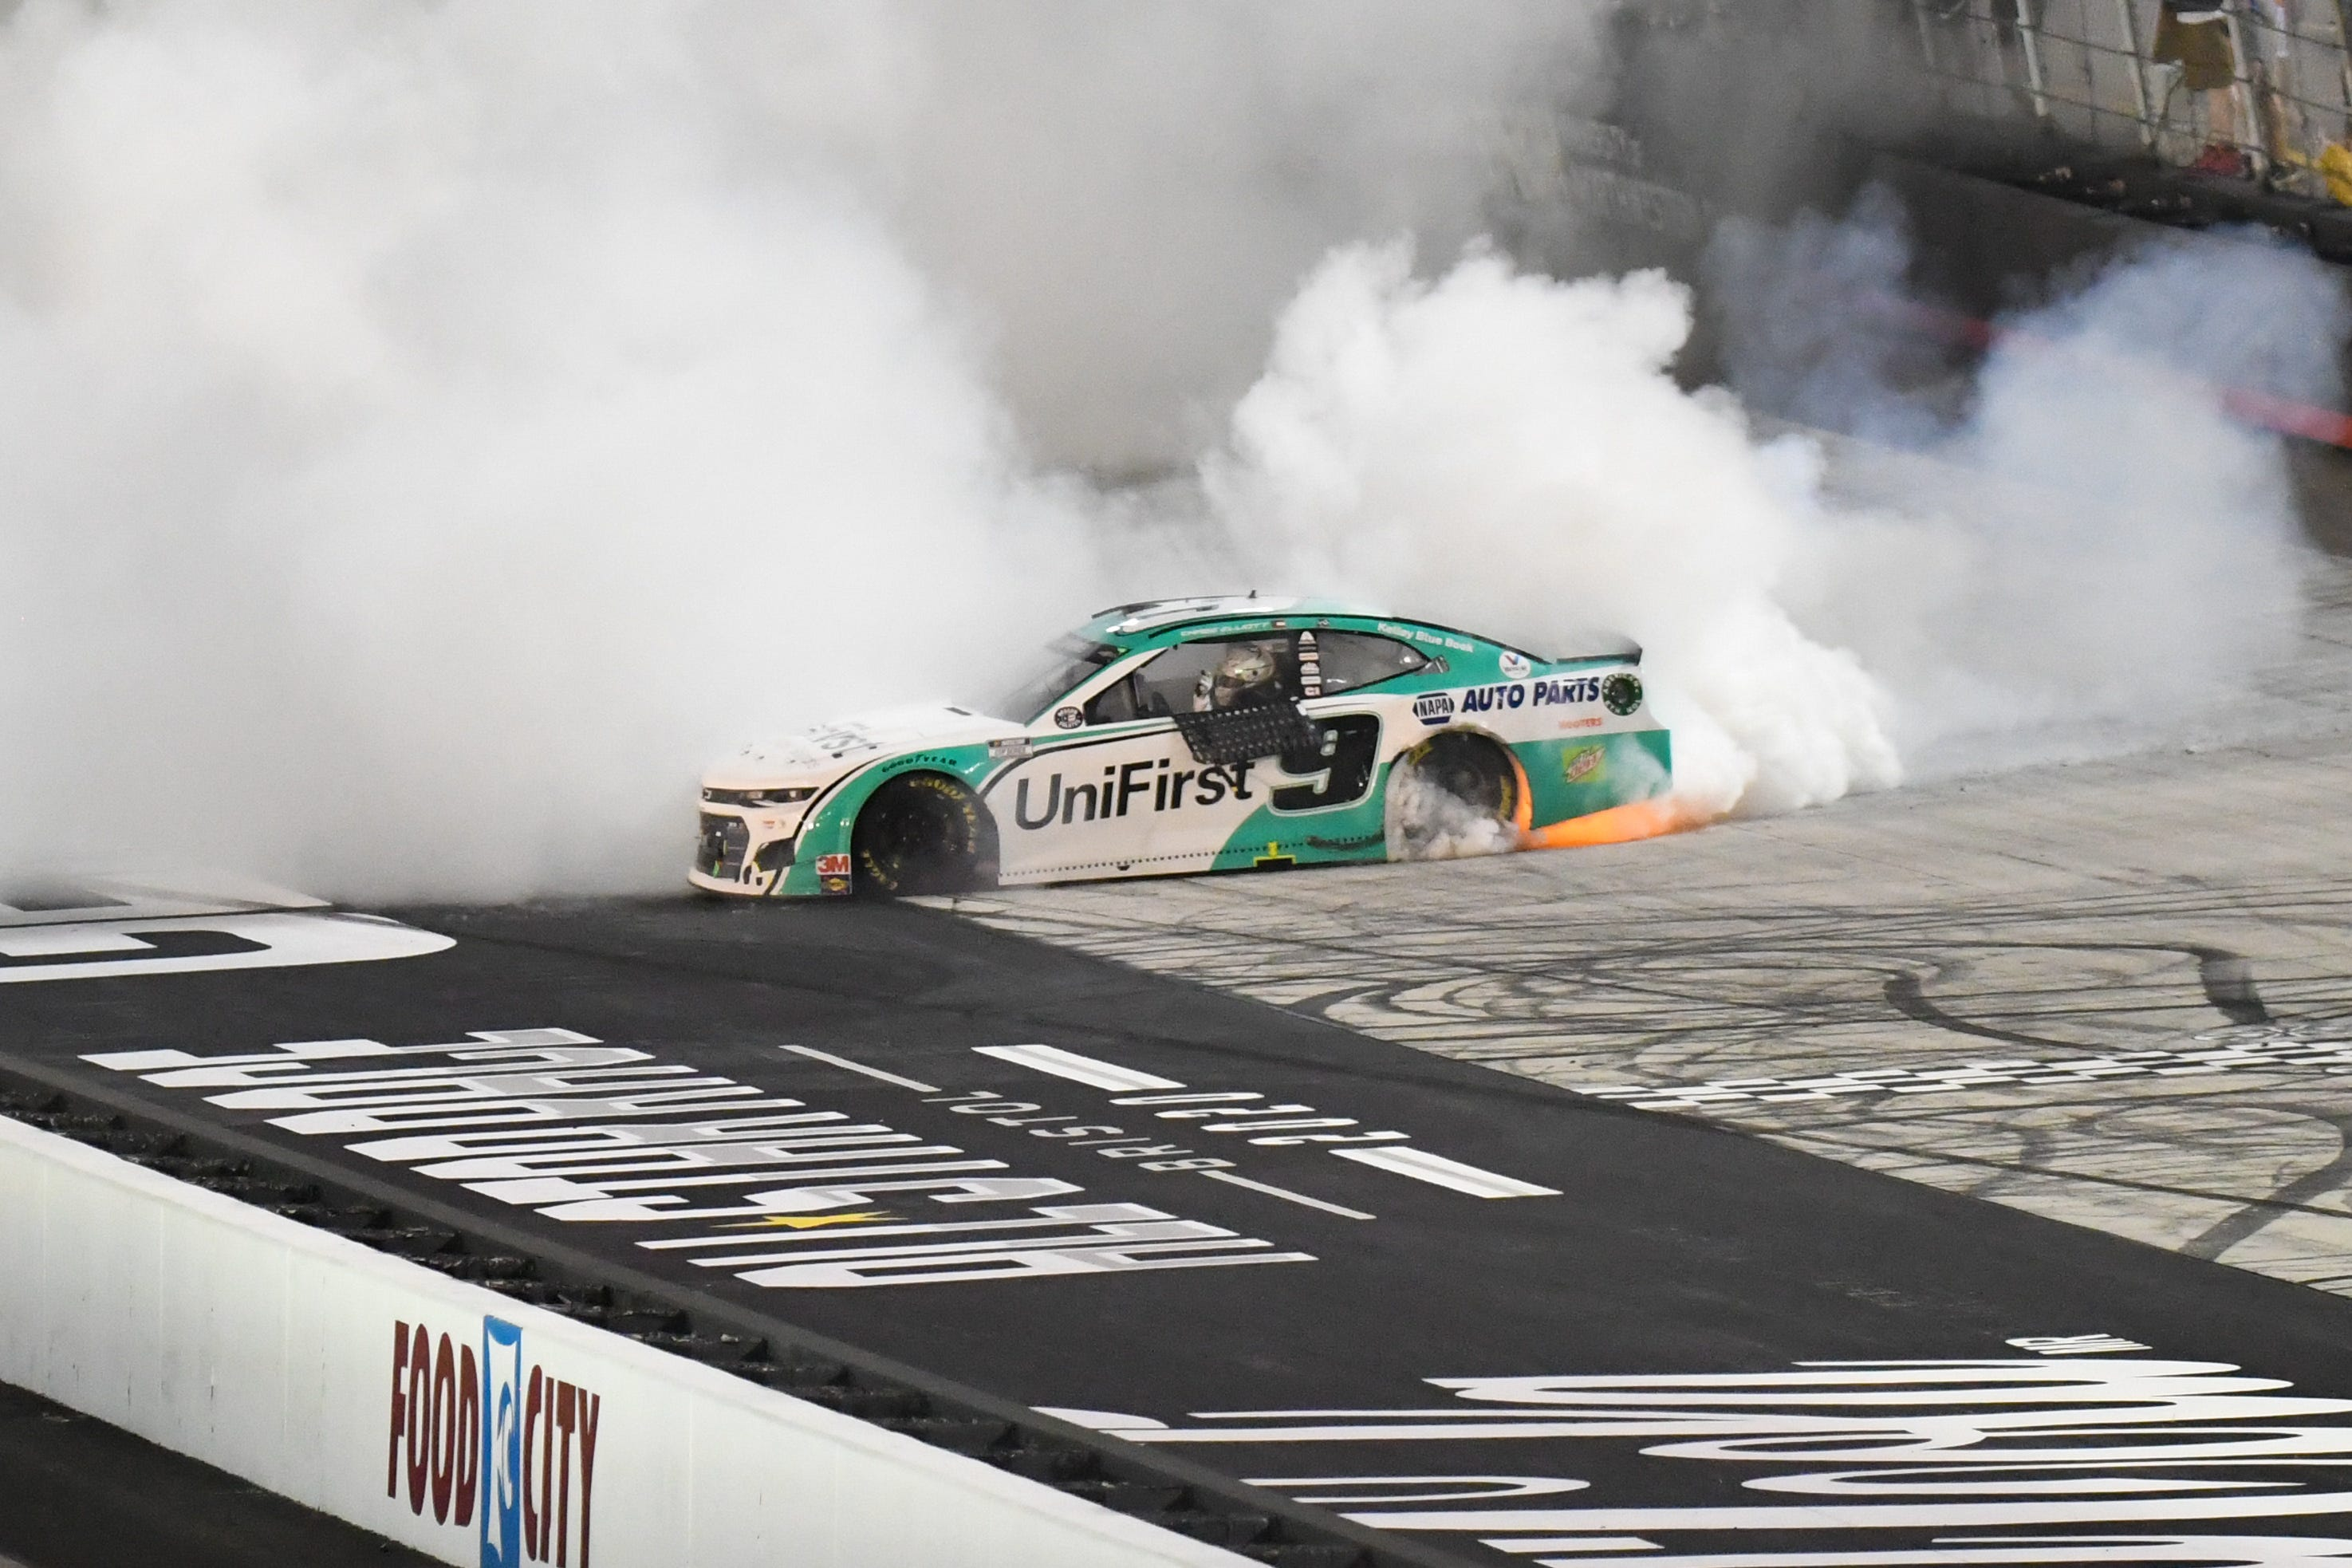 NASCAR All-Star Race 2021: Schedule, lineup, TV, radio, streaming for race at Texas Motor Speedway